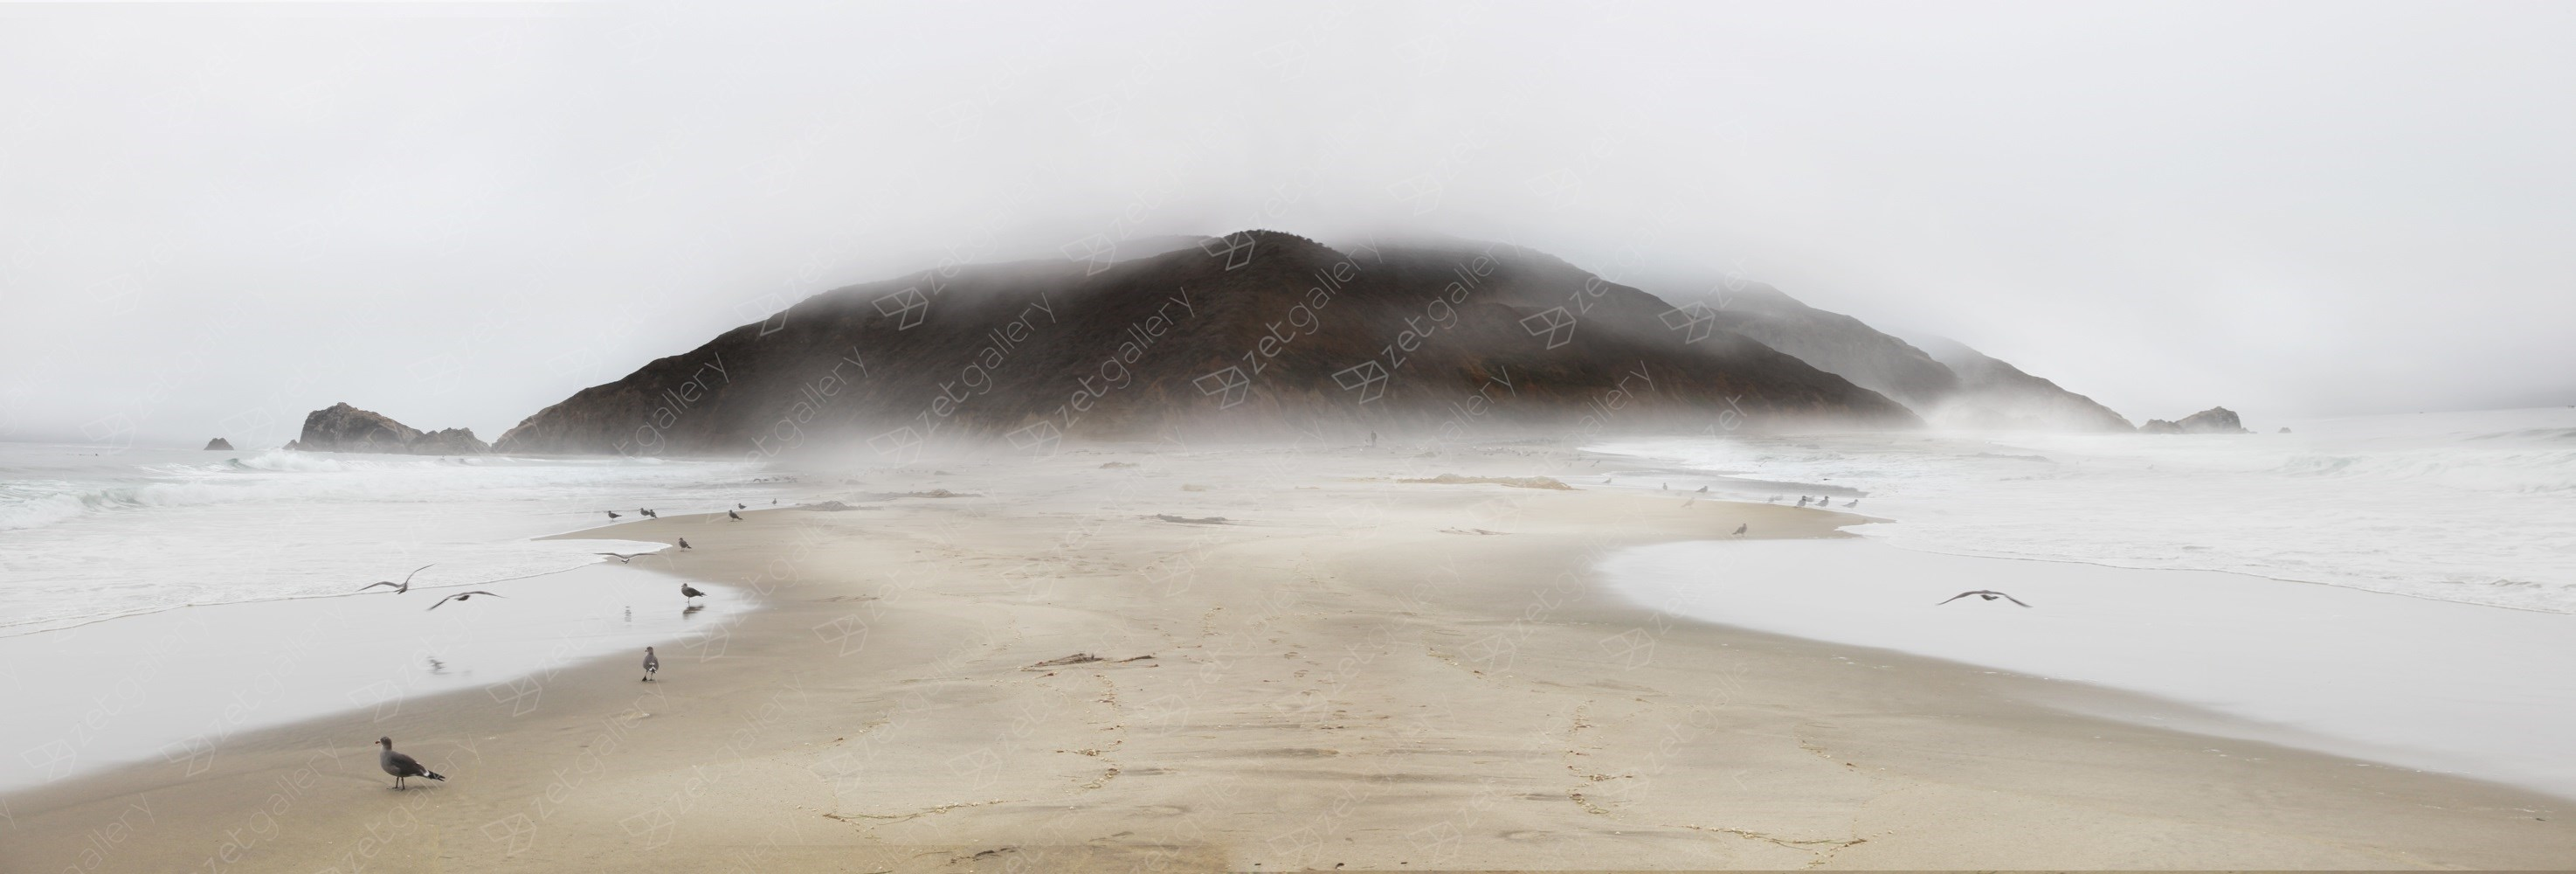 Fog and Mirage - Point Reyes California, original Landscape Digital Photography by Shimon and Tammar Rothstein